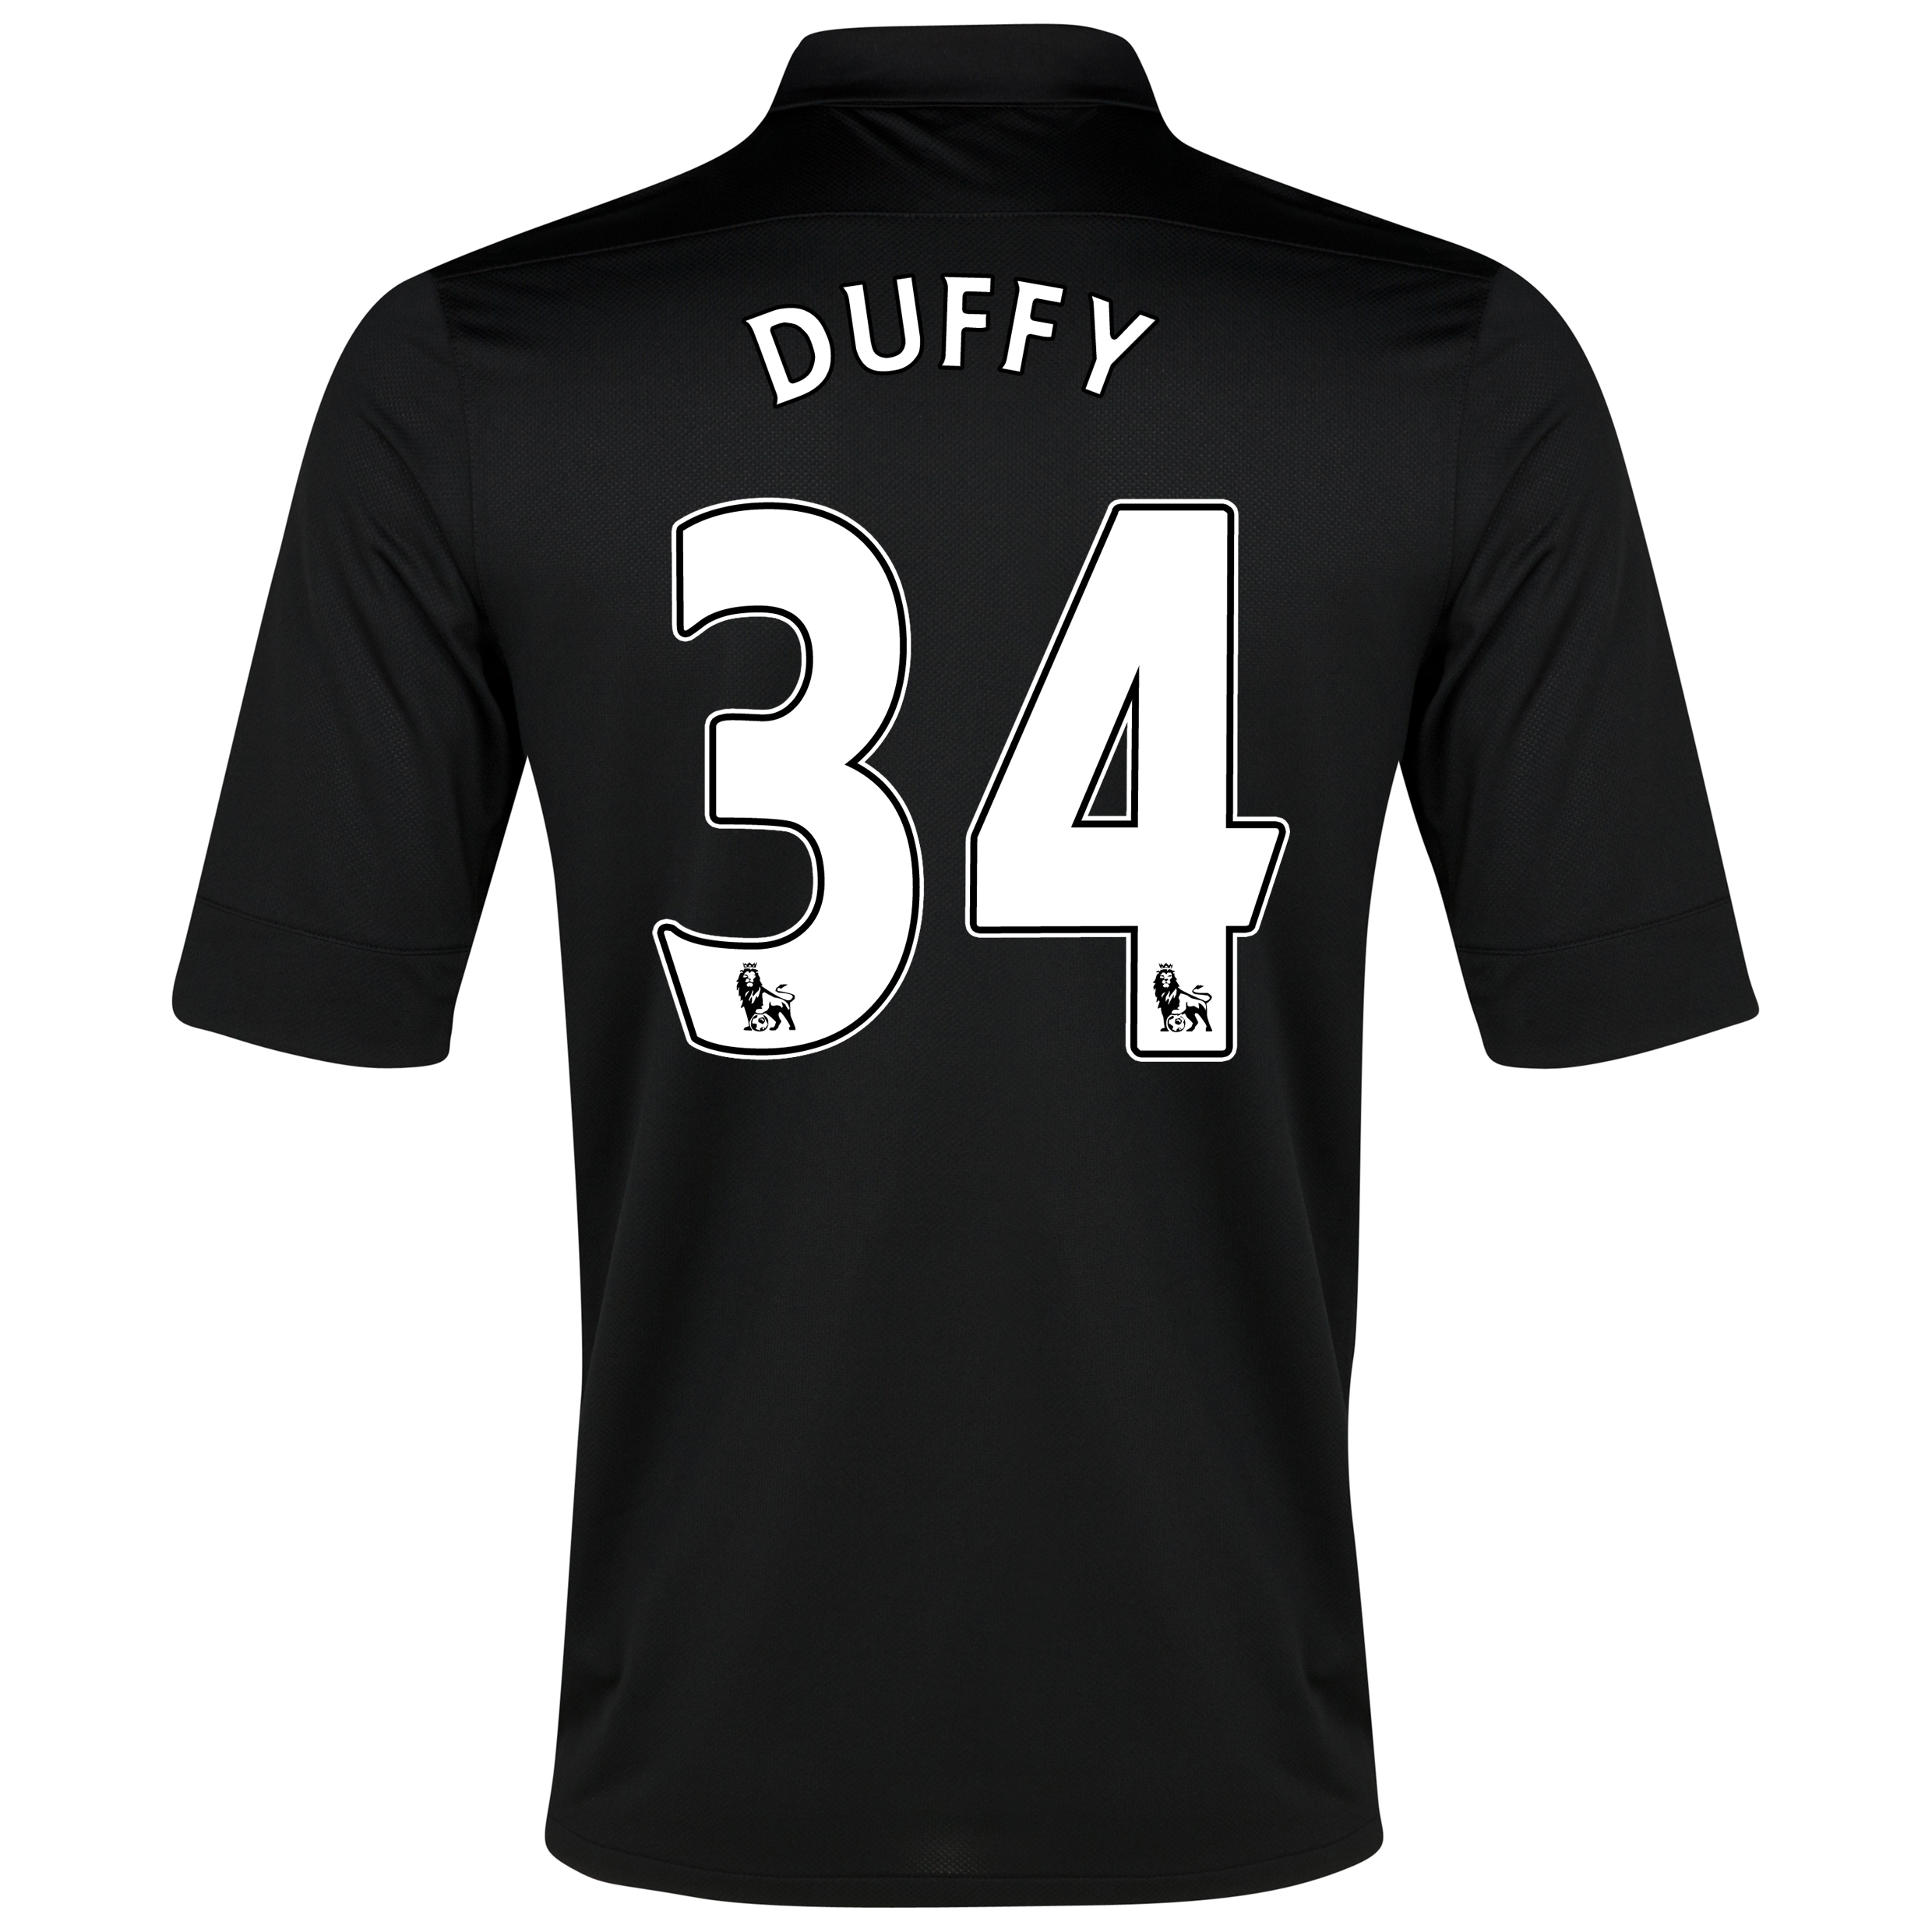 Everton Away Shirt 2012/13 - Junior with Duffy 34 printing